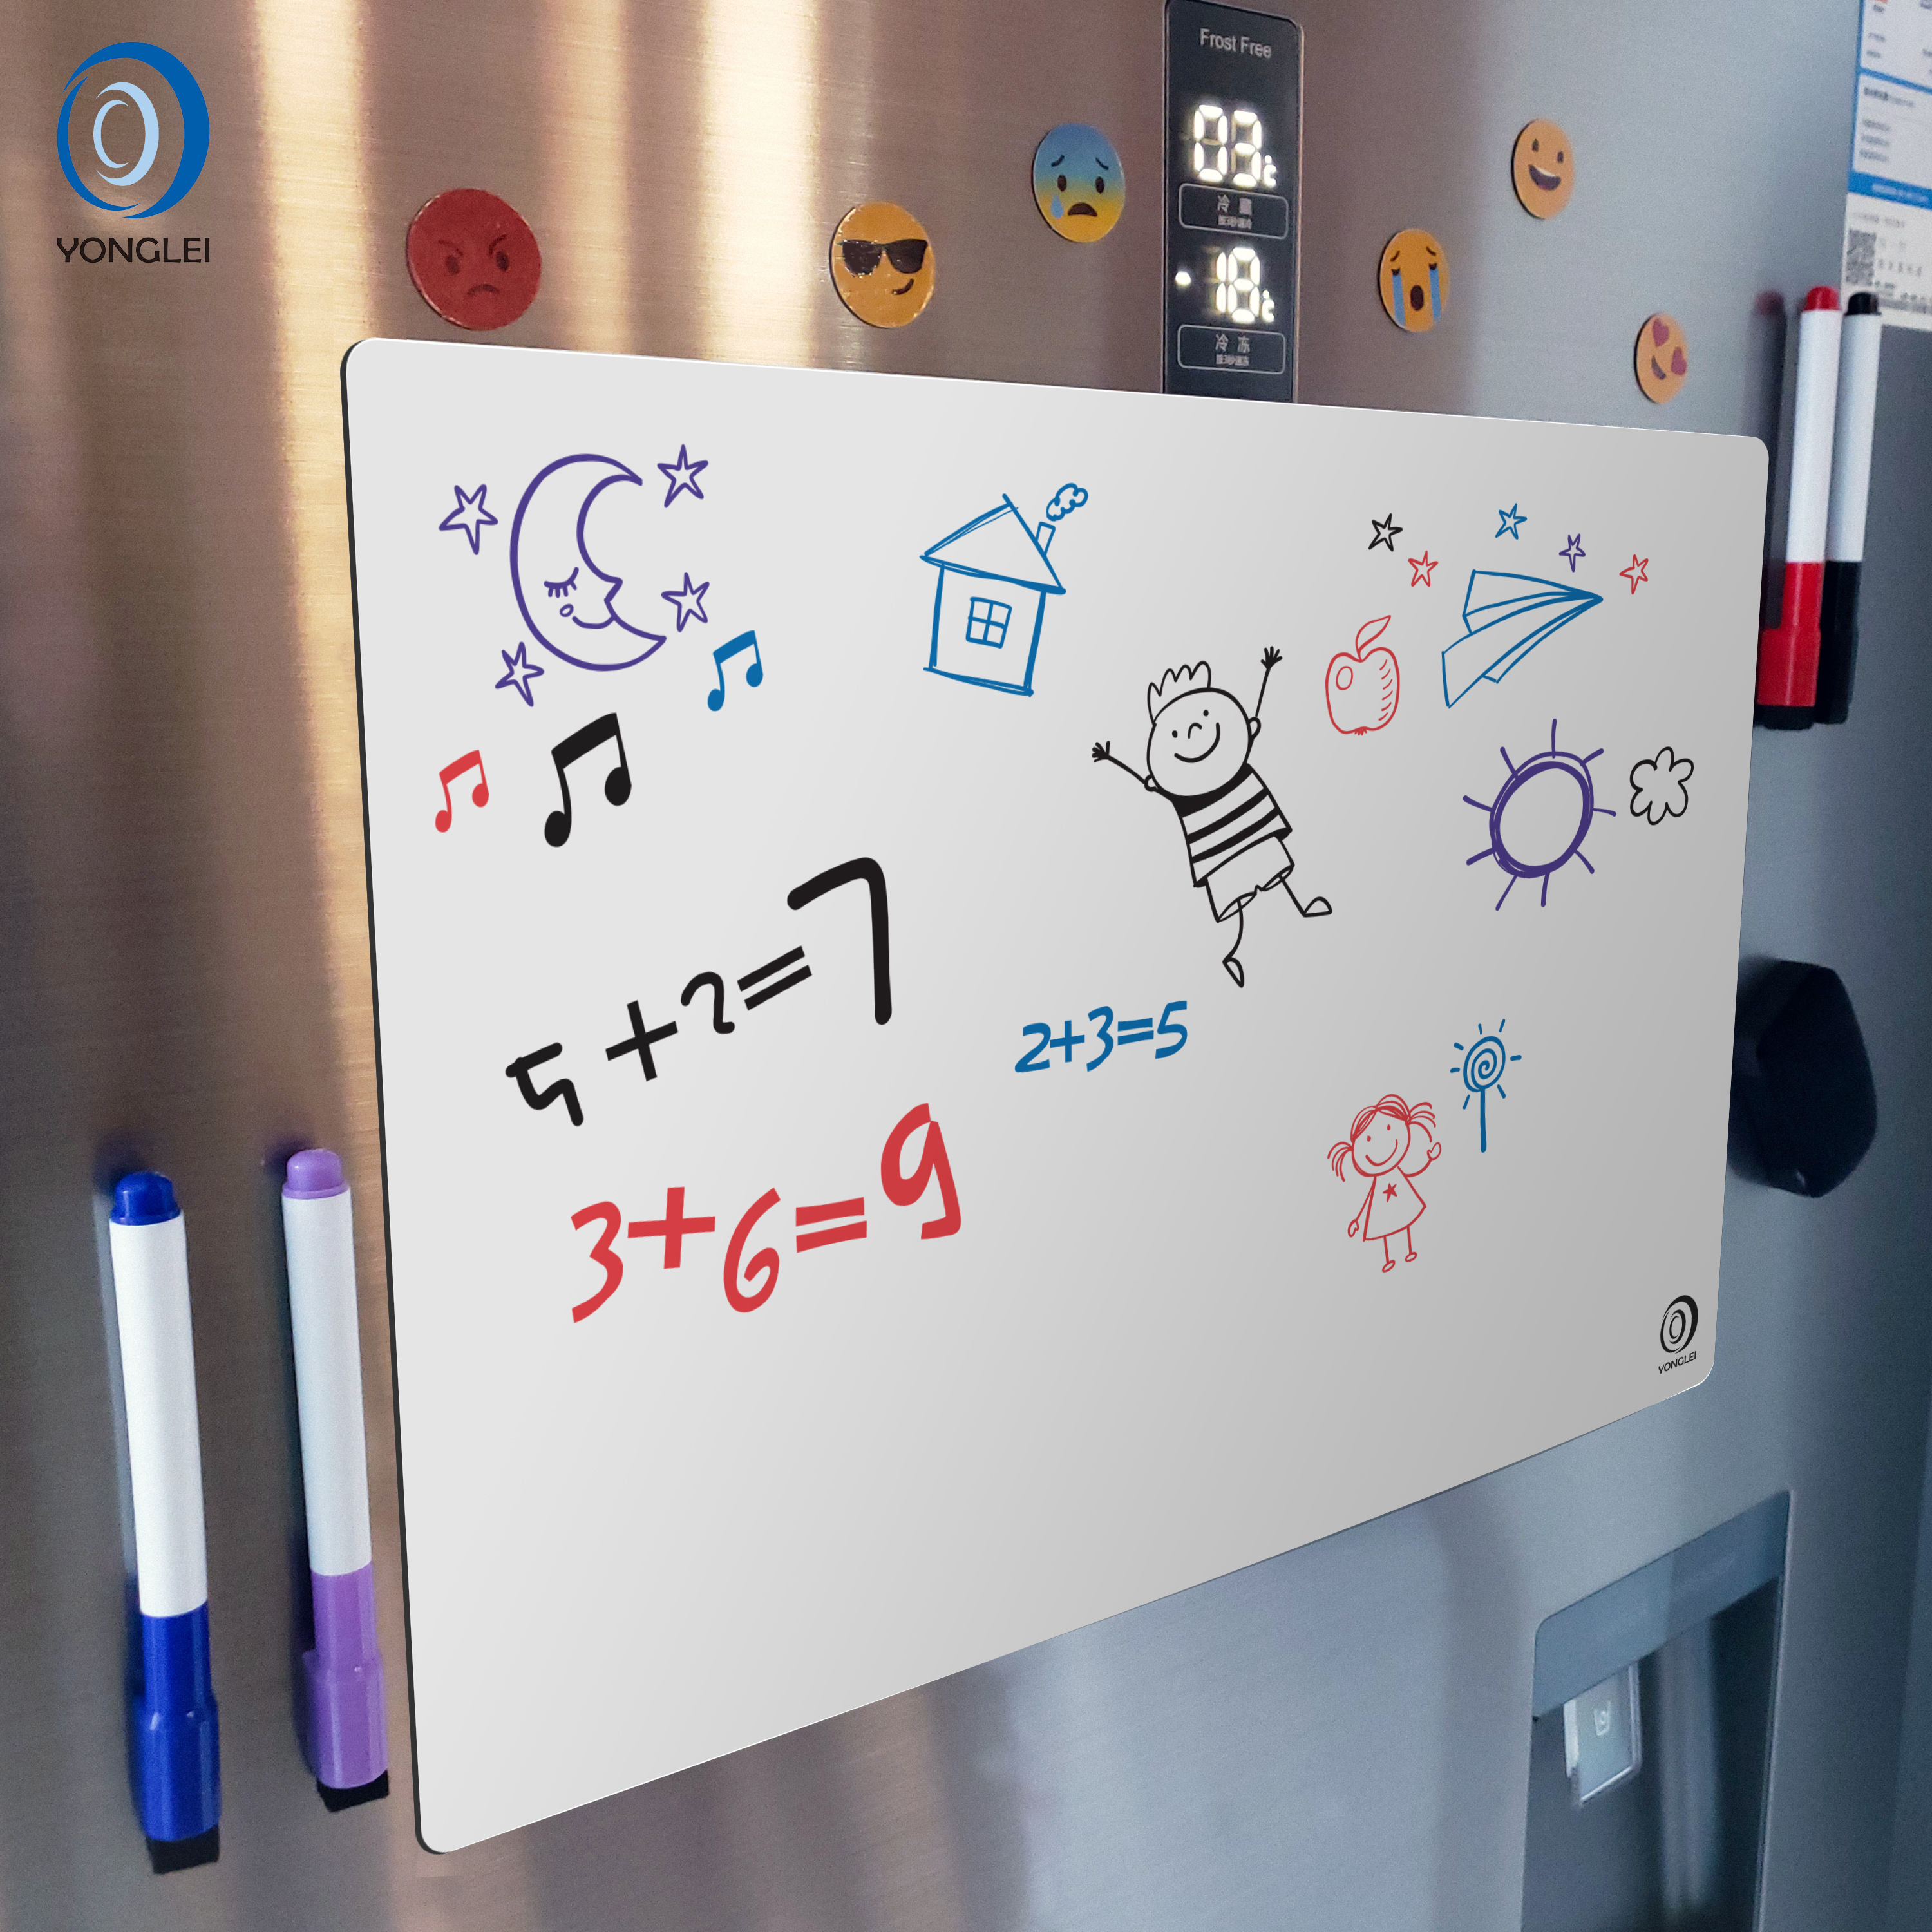 7.9-8A2 Dry erase magnetic whiteboard fridge magnet white board fridge